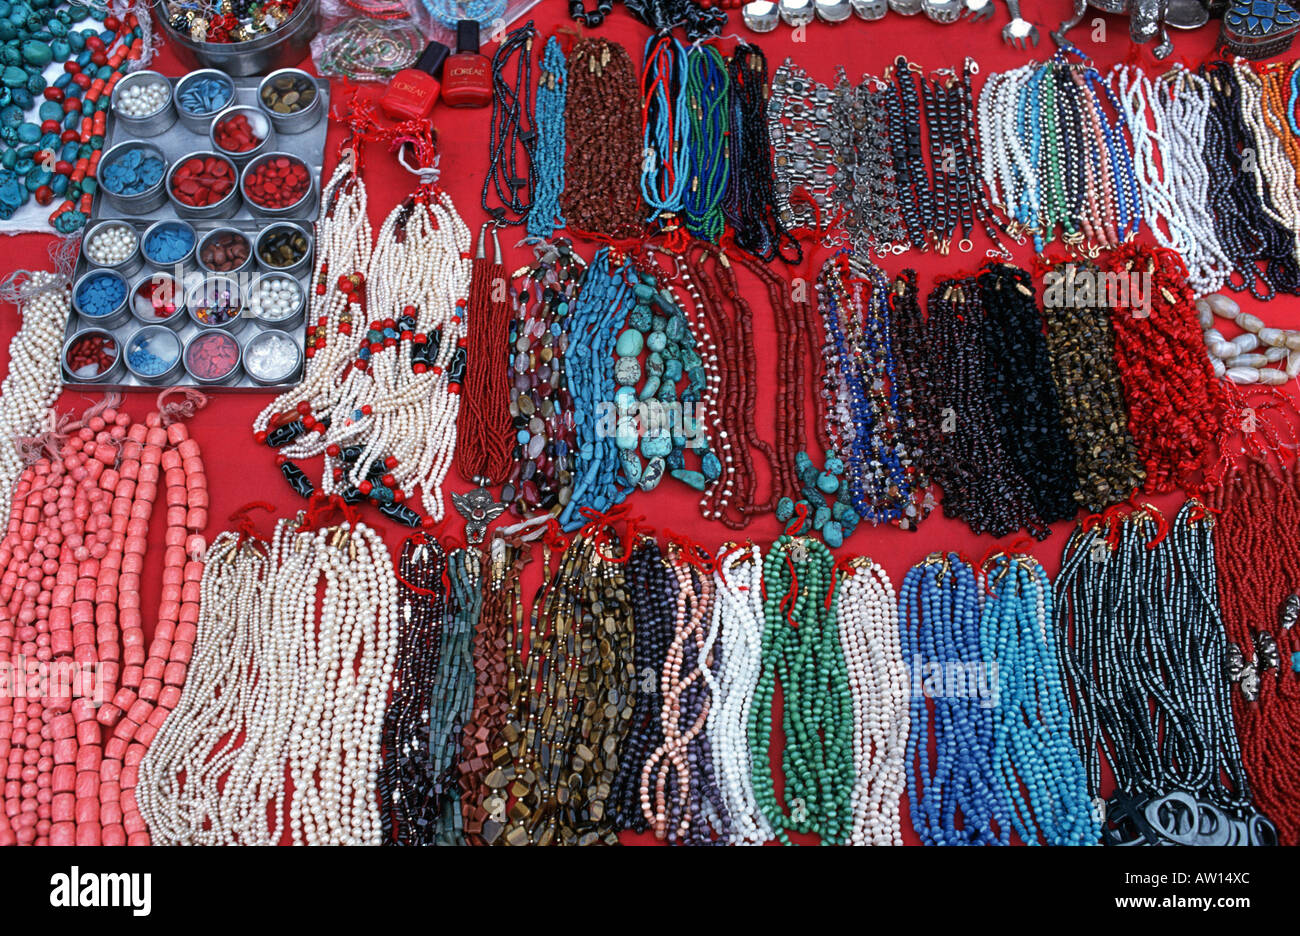 Bead necklaces for sale at market in Keylong As also sold in Manali Himachal Pradesh India - Stock Image